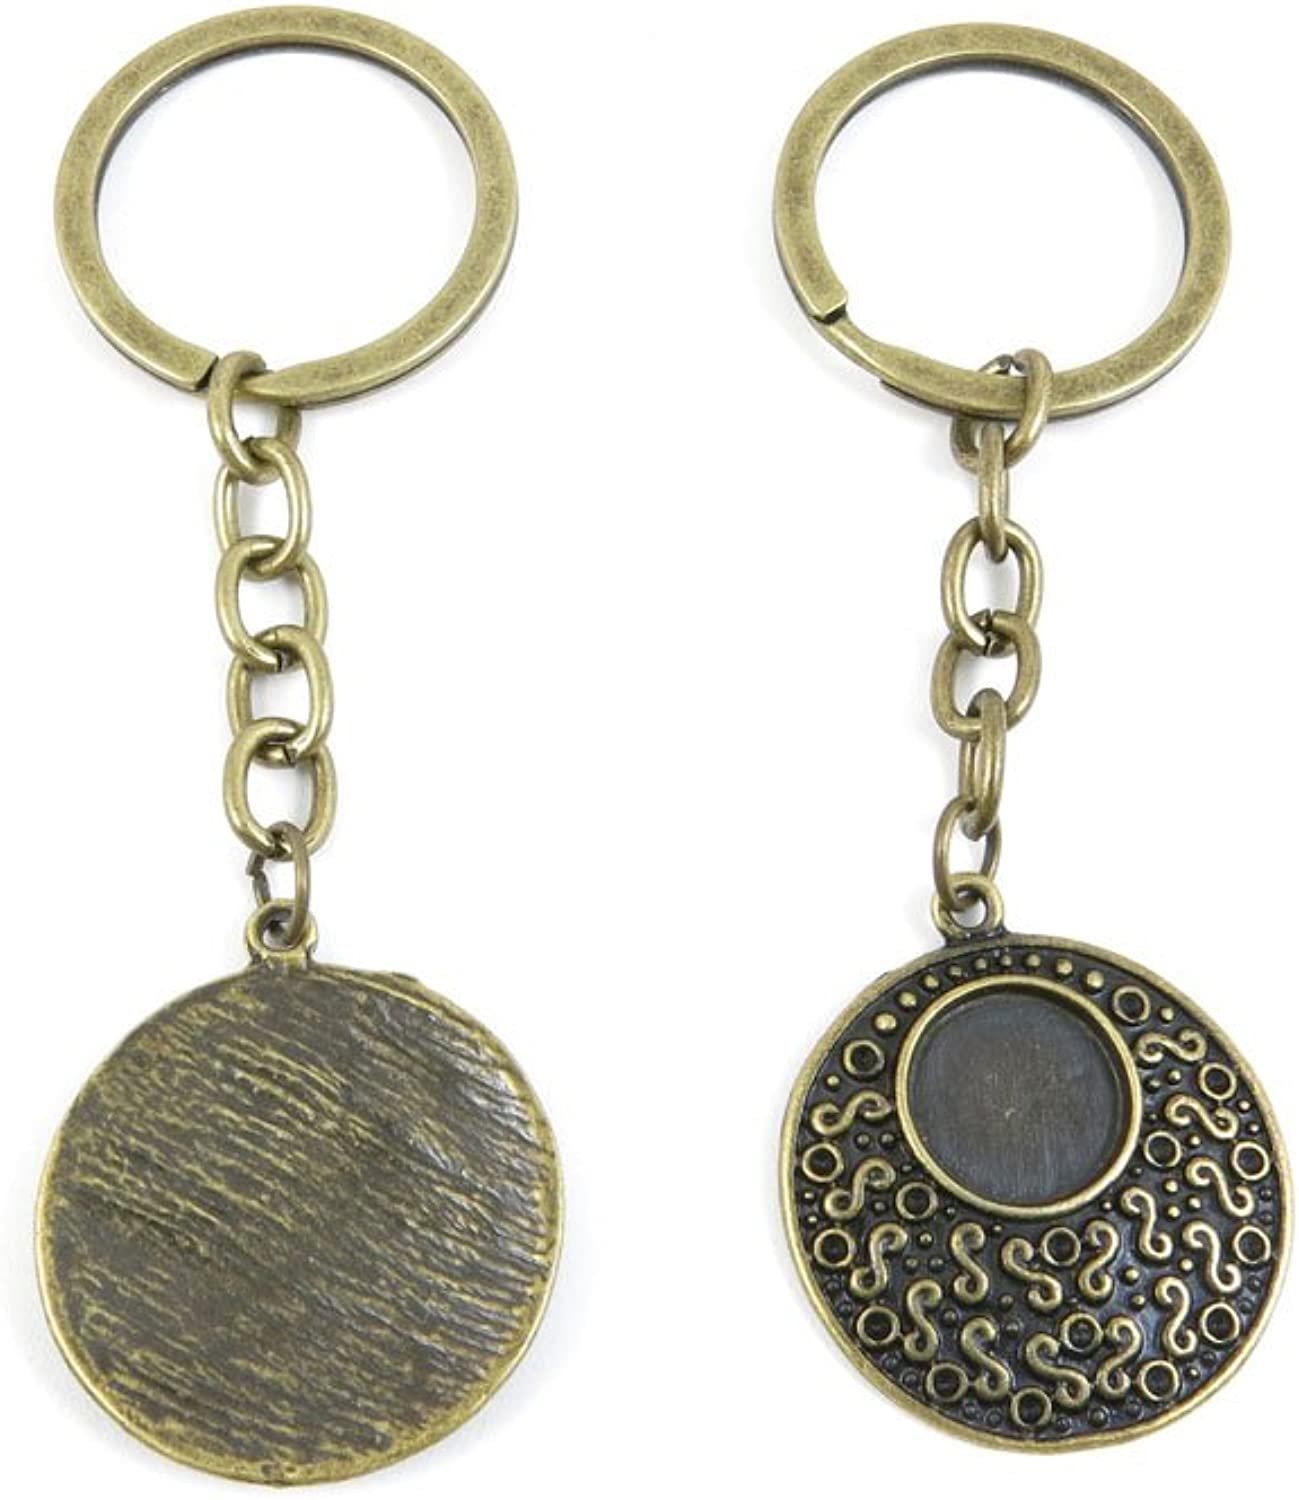 80 PCS Keyring Car Door Key Ring Tag Chain Keychain Wholesale Suppliers Charms Handmade D4GP0 S Cabochon Setting